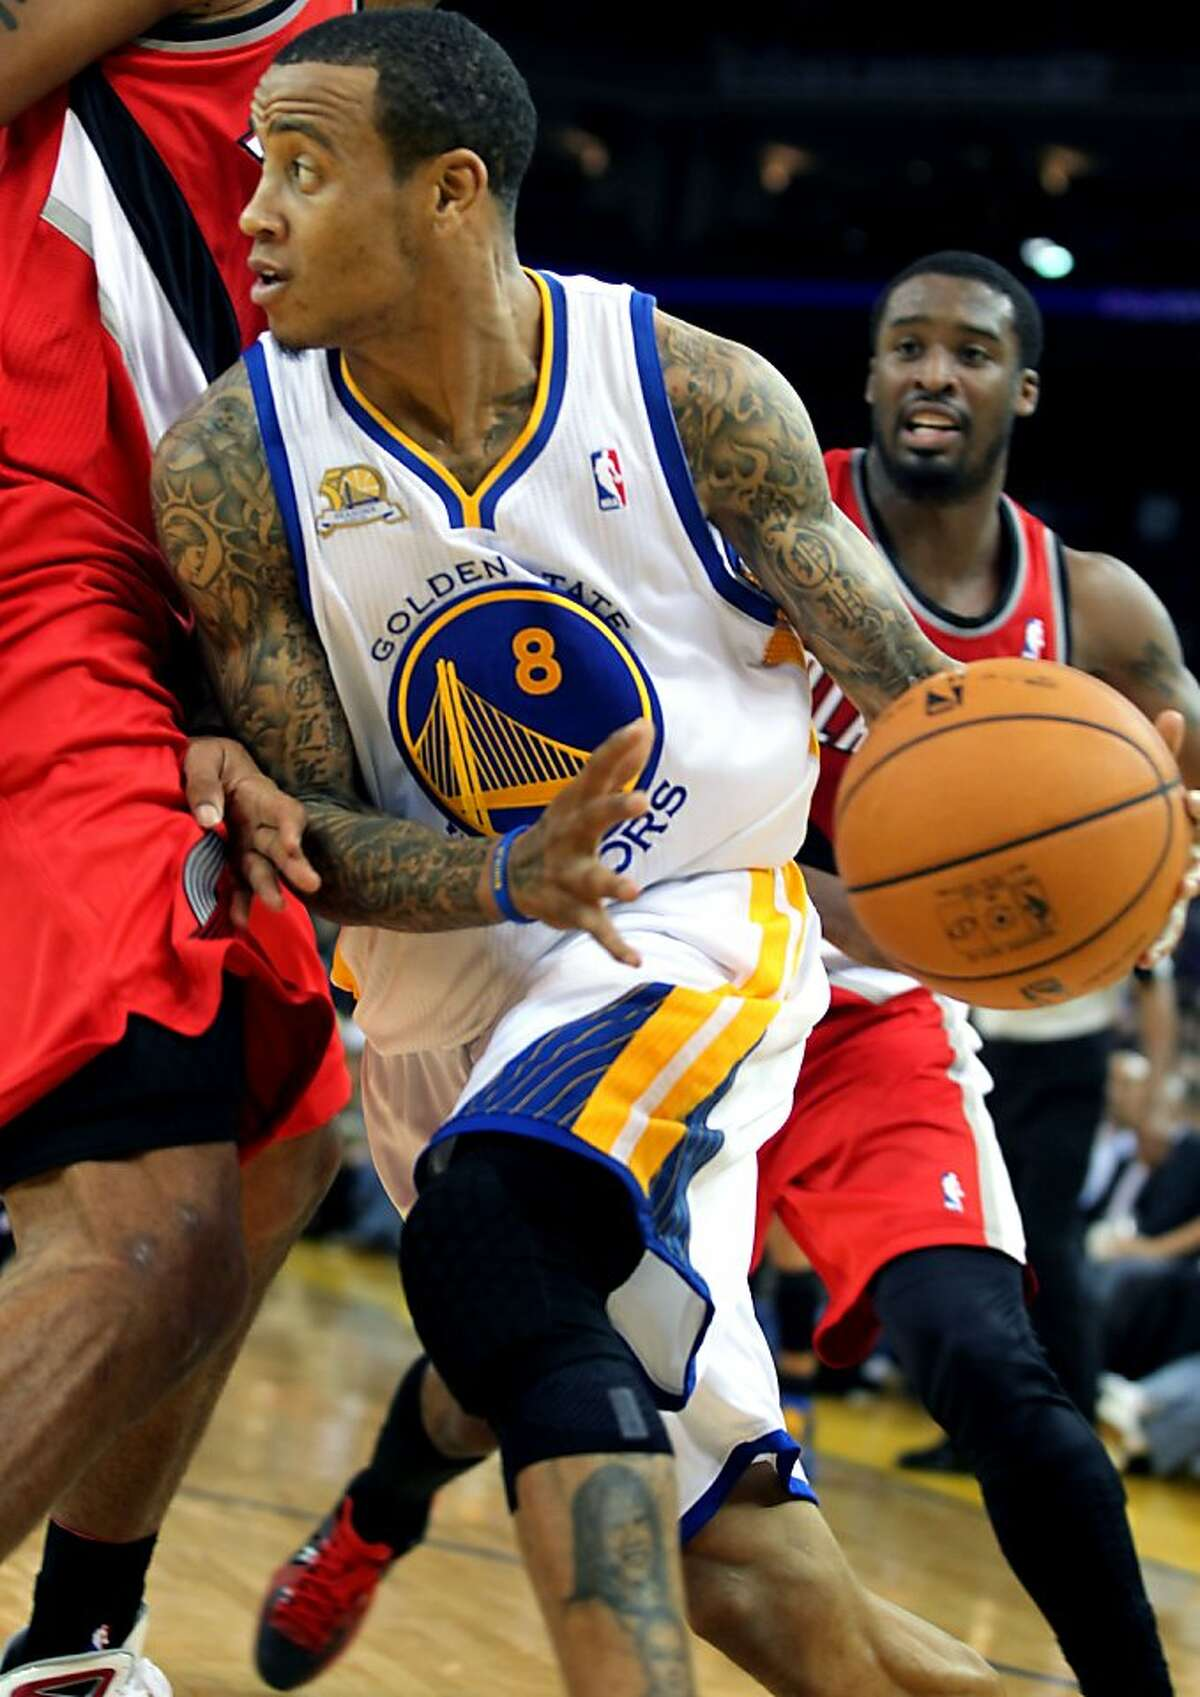 Golden State Warriors' Monta Ellis (8) drives to the basket between two Portland Trail Blazer defenders during the first half of their NBA basketball game in Oakland, Calif., Wednesday, January 25, 2012.